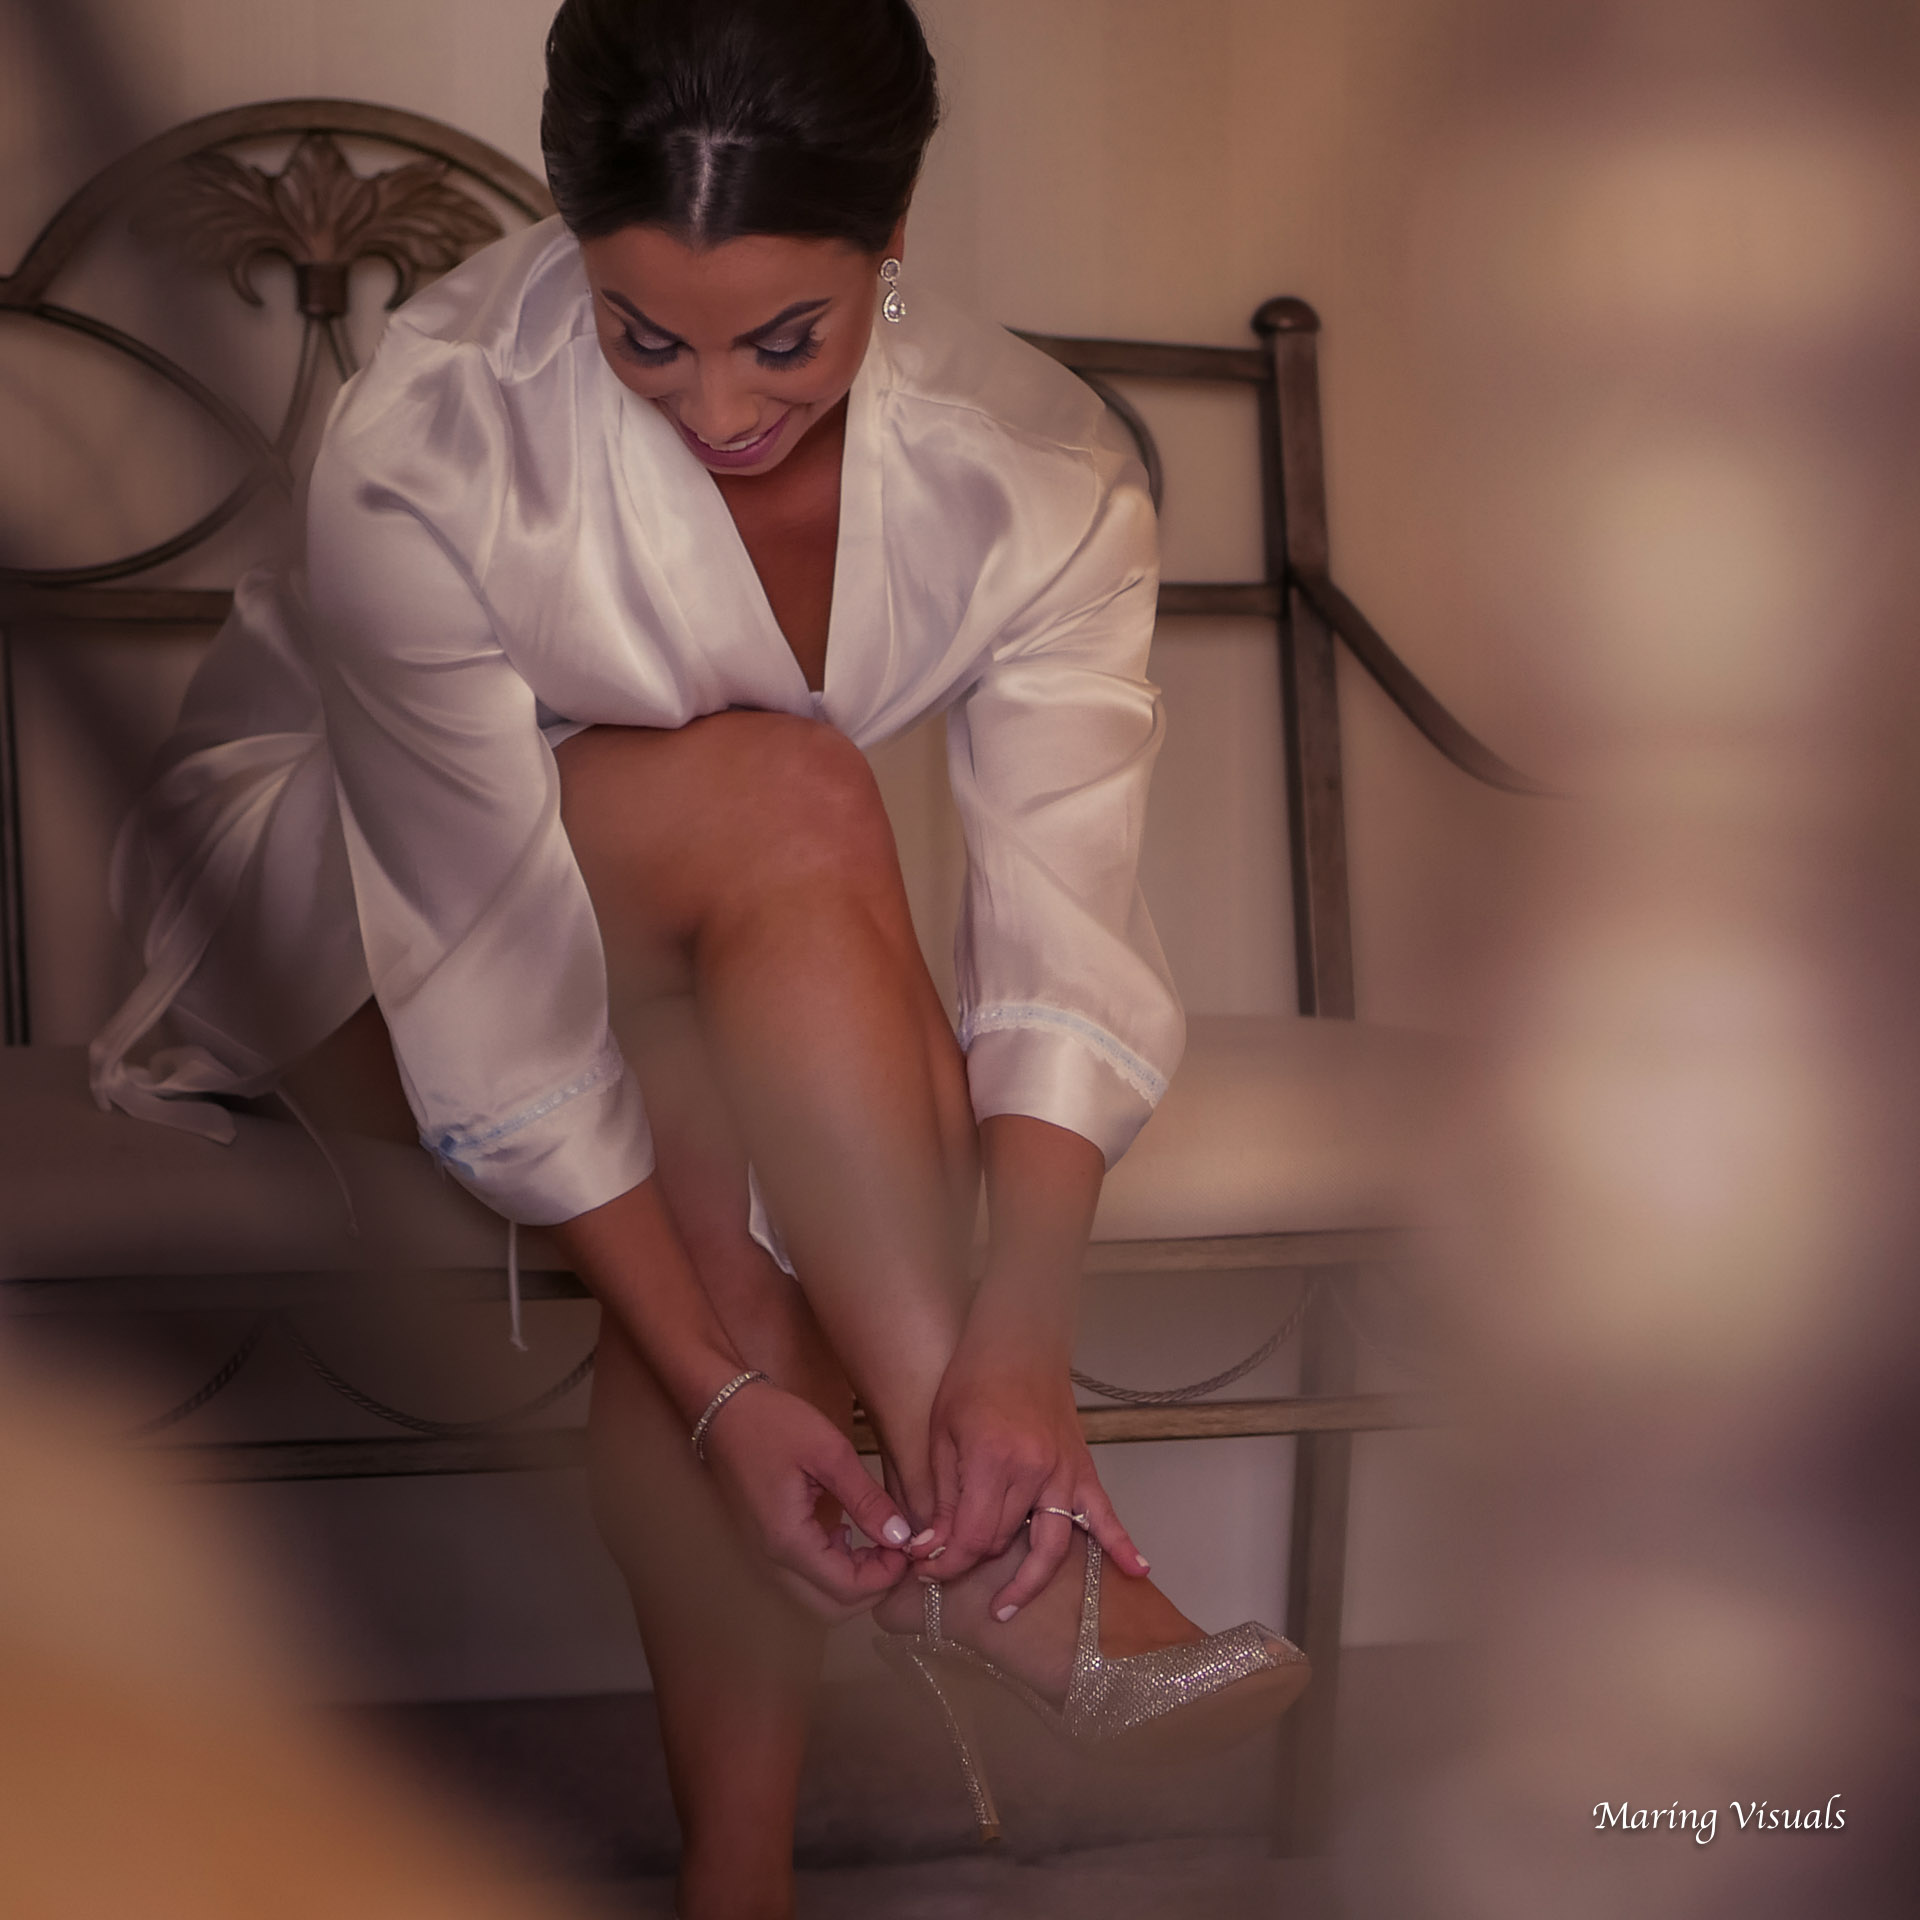 The Bride puts on her wedding shoes...